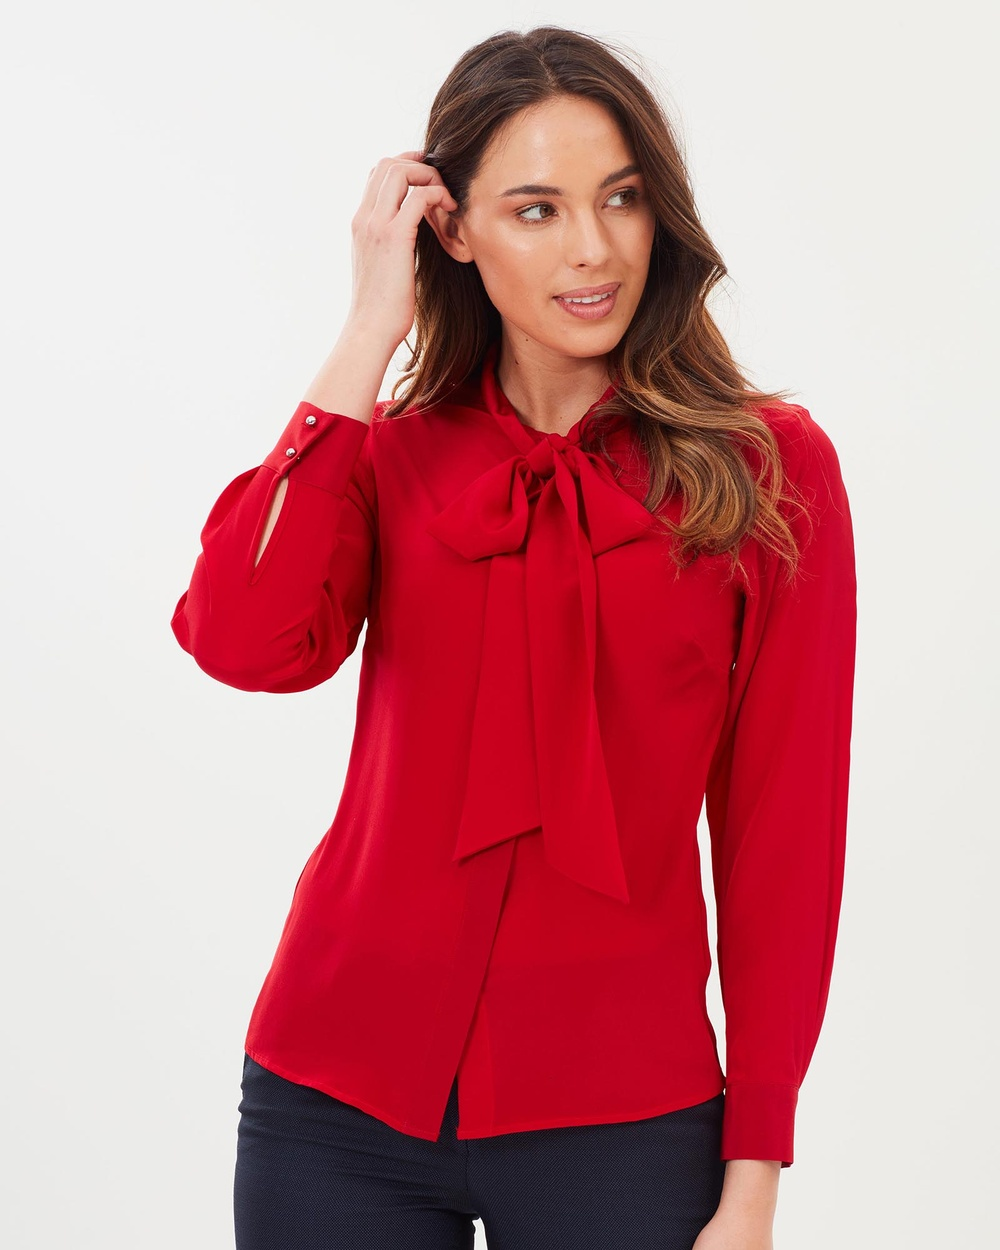 Farage Norah Bow Blouse Tops Red Norah Bow Blouse